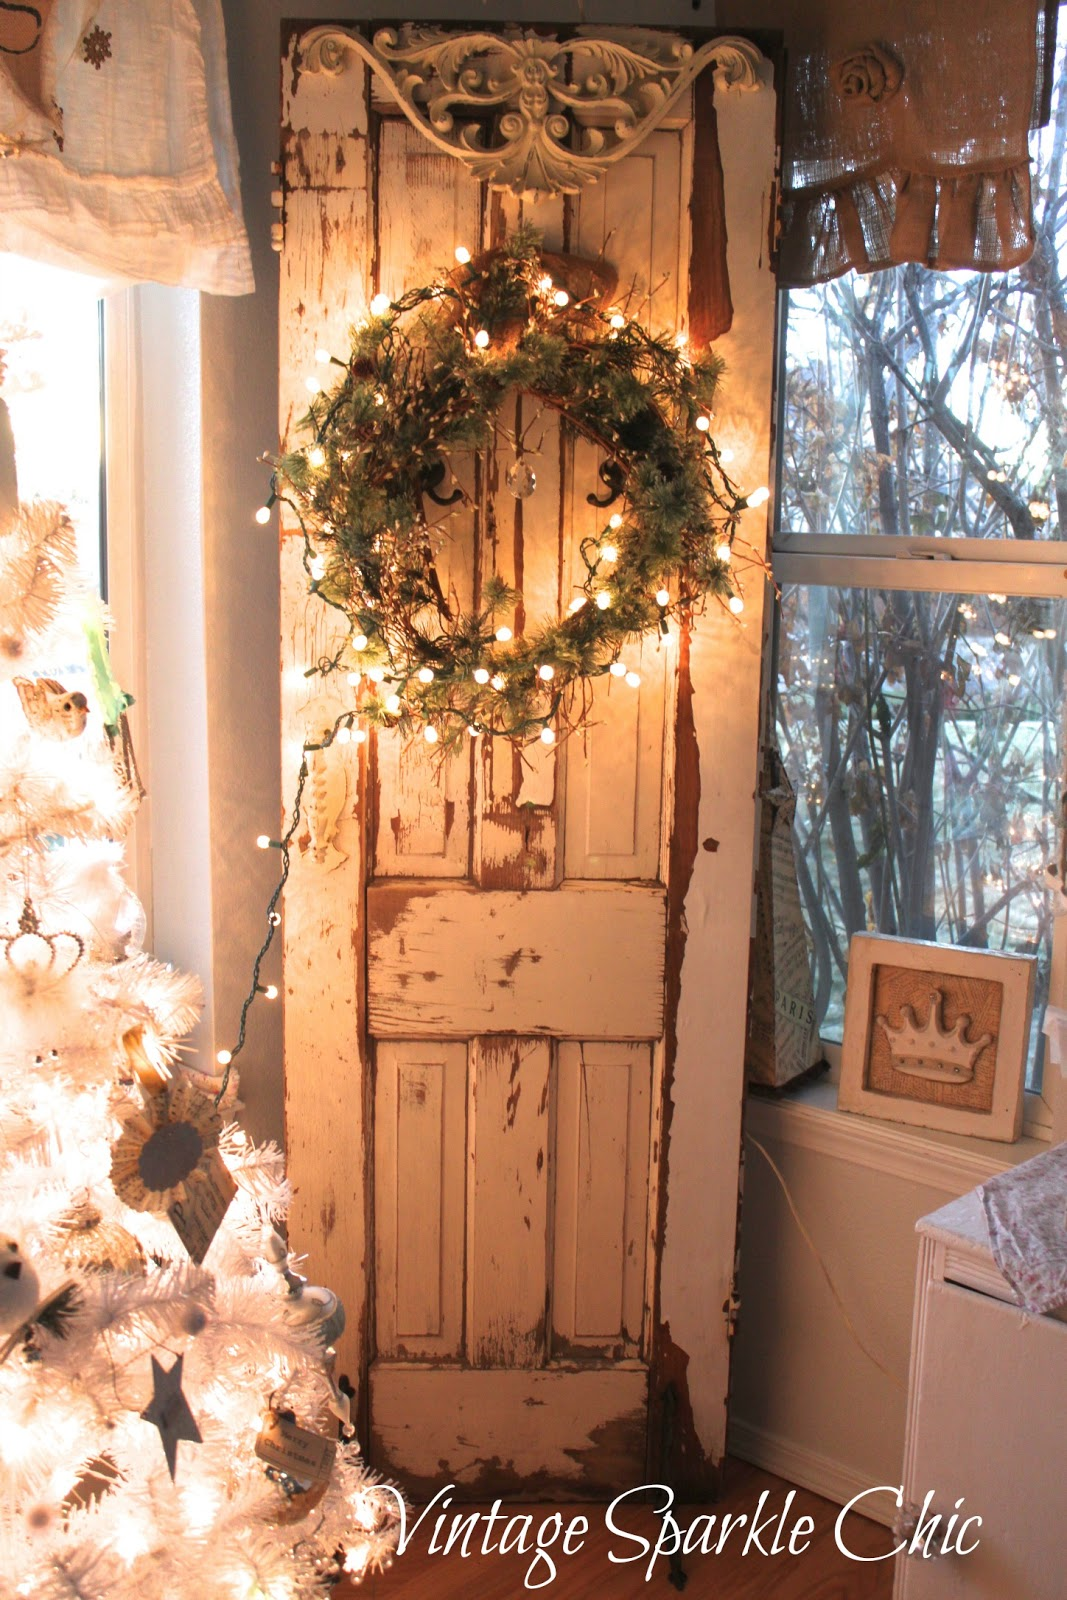 Vintage Sparkle Chic: French Shabby Christmas decorations